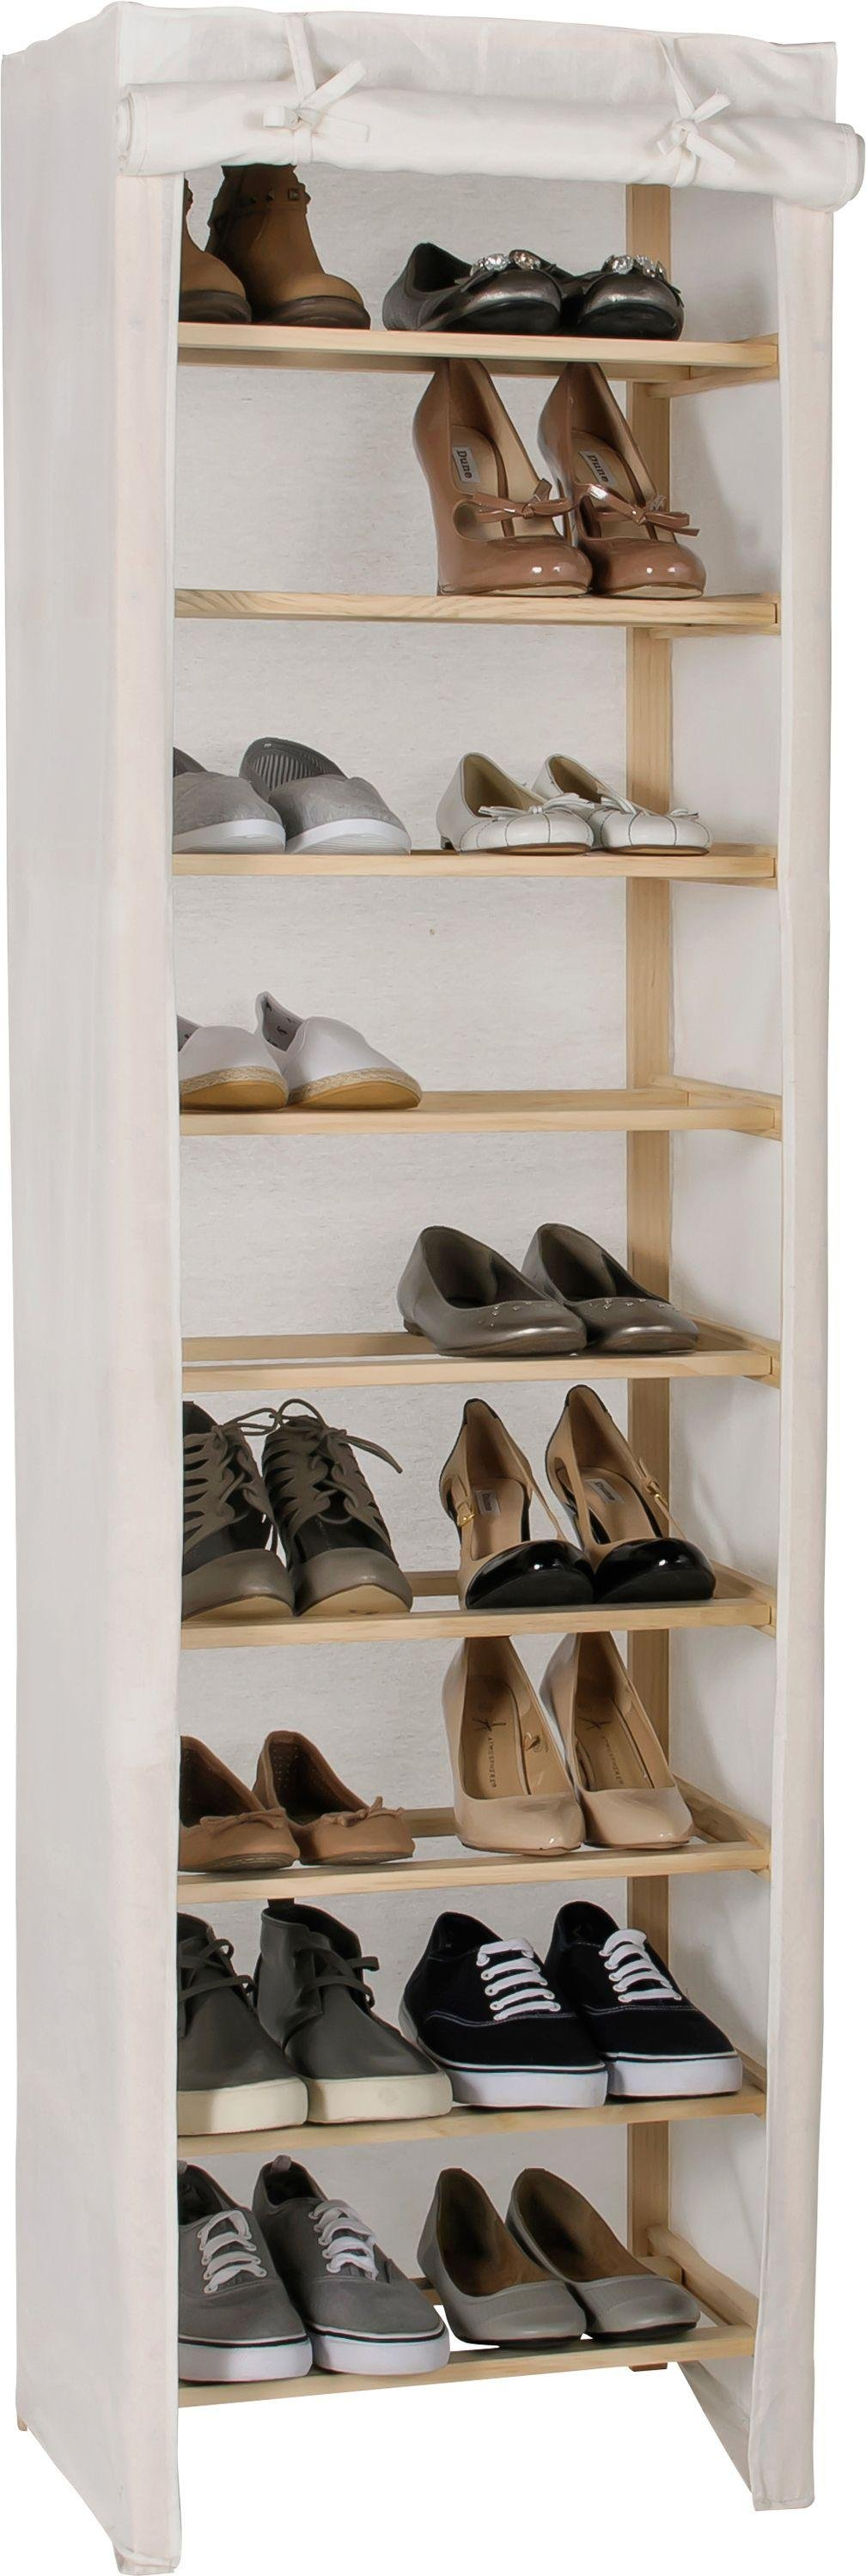 Argos Home Canvas and Pine 9 Shelf Shoe Storage Rack - Cream